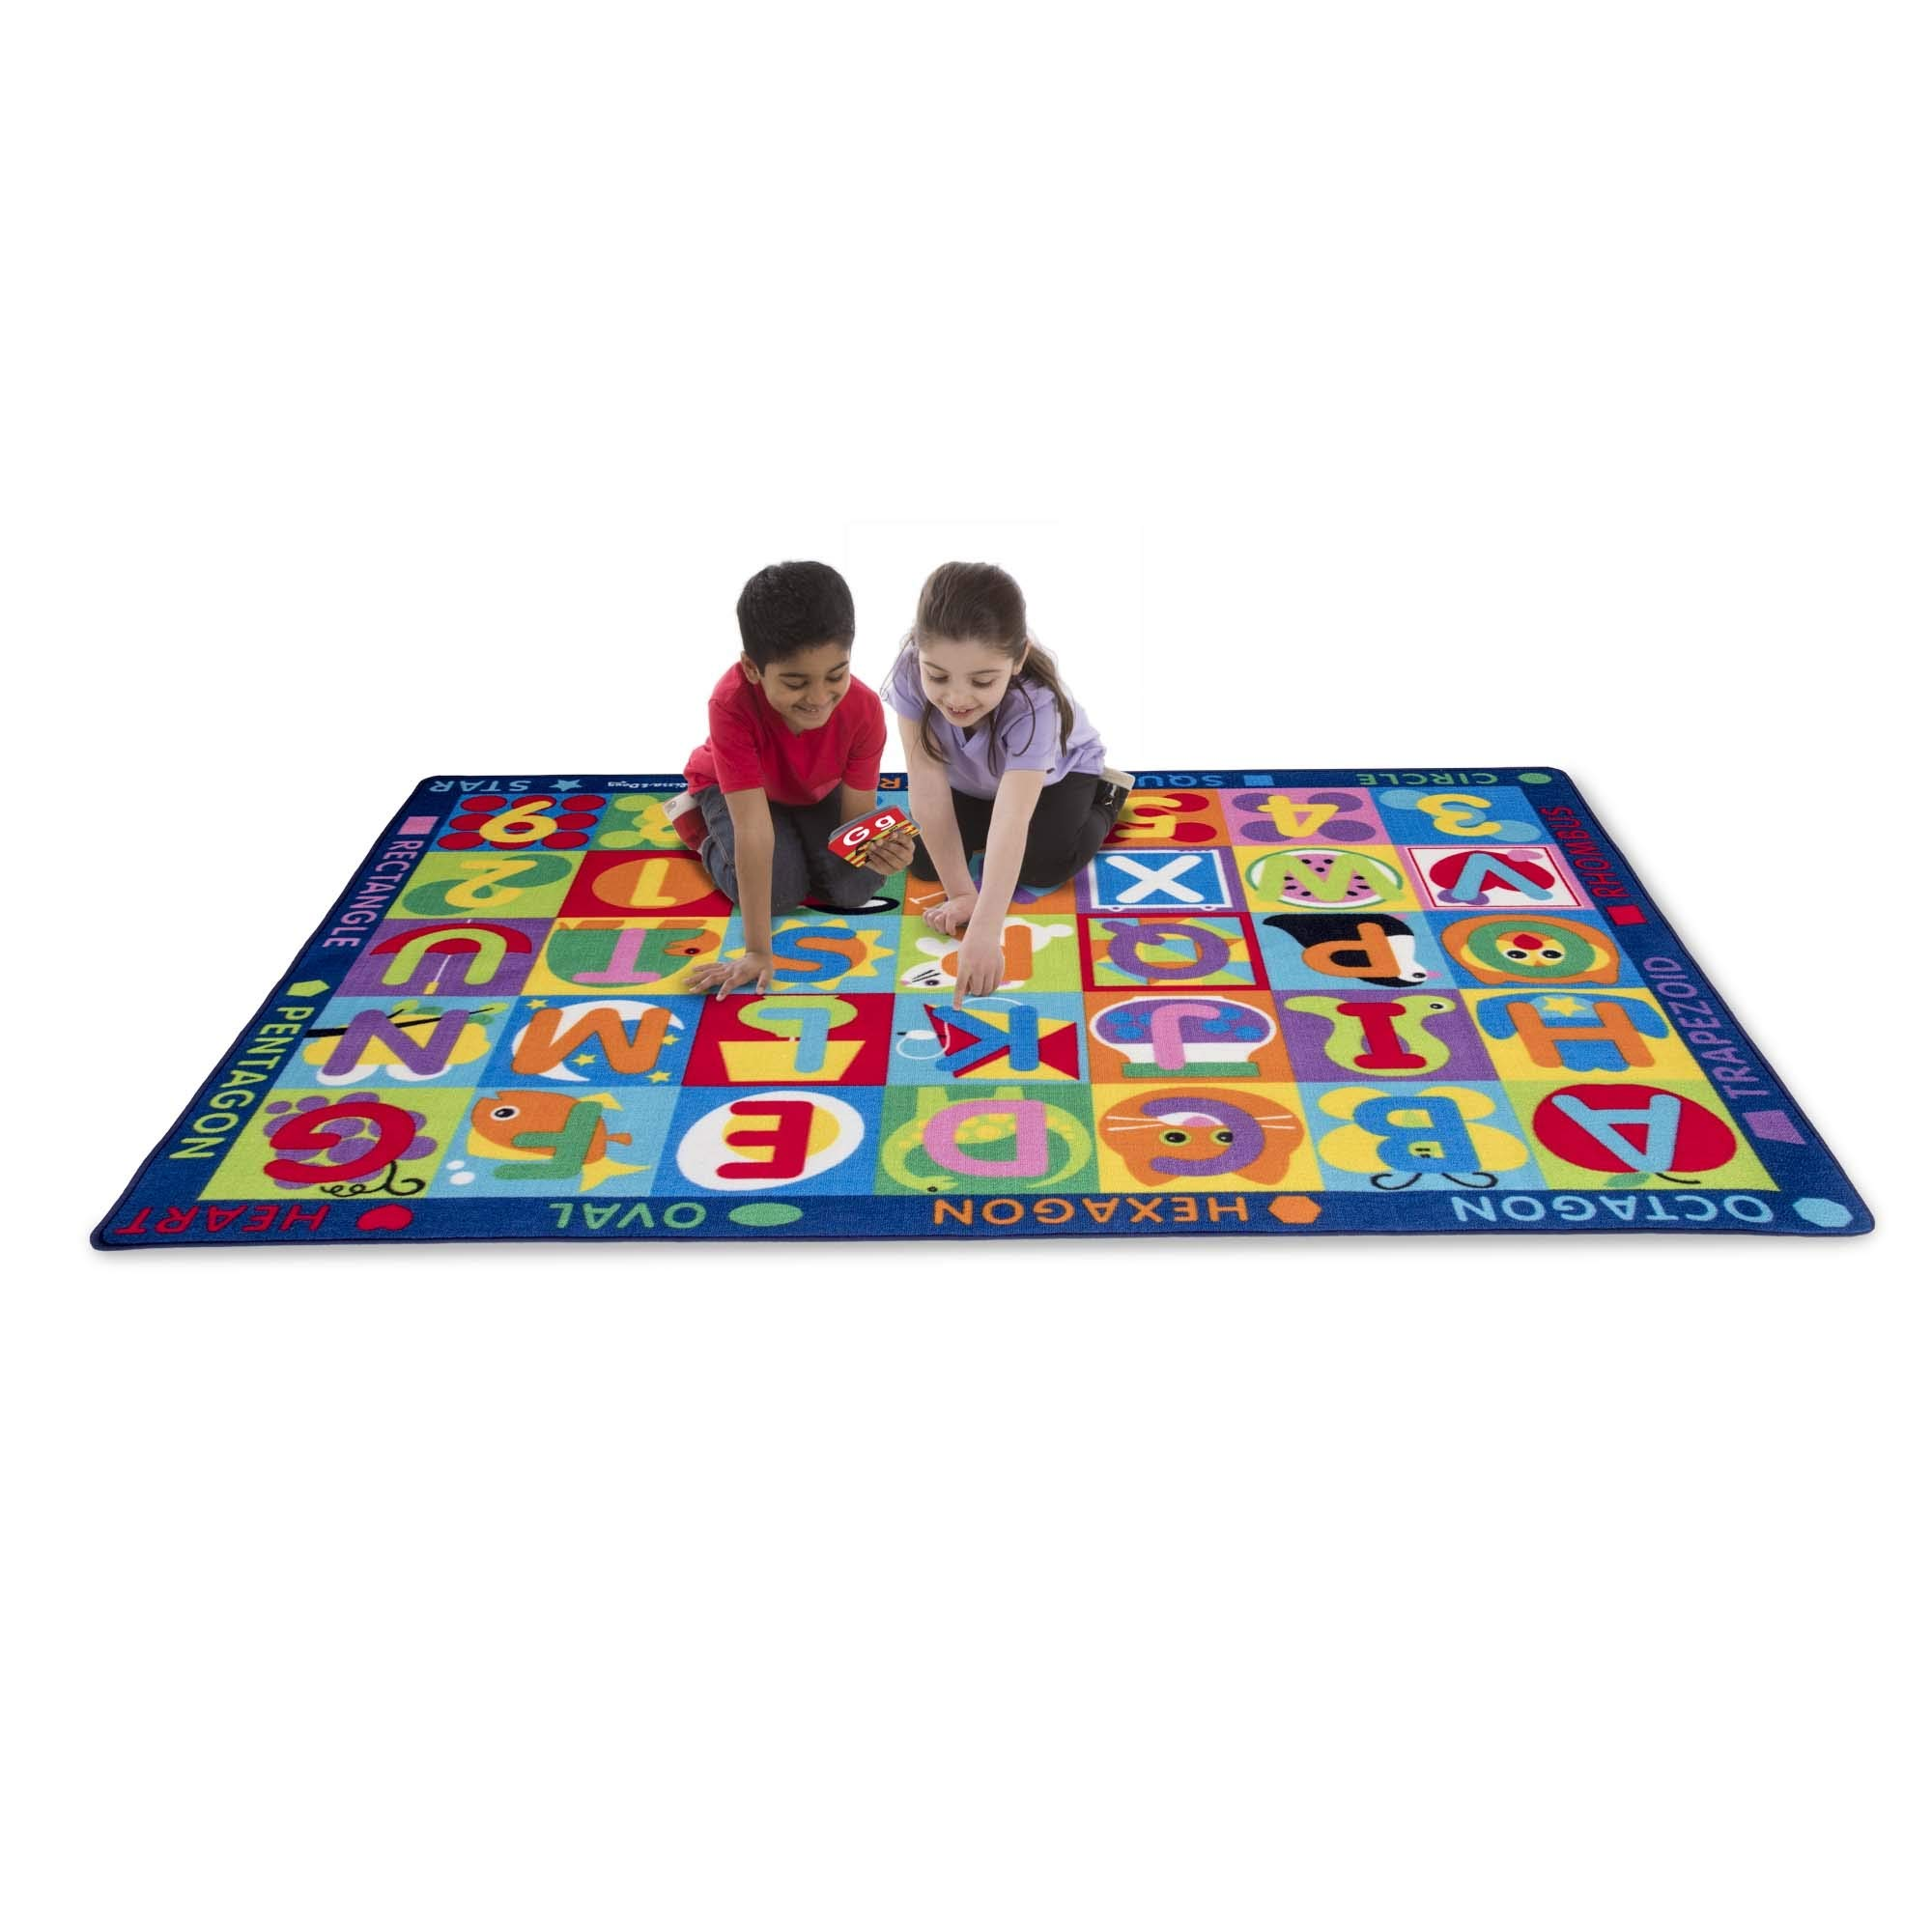 """Melissa & Doug Jumbo ABC-123 Rug (Multicolor, Oversized Activity Rug, 36 Game Cards, 58"""" x 79"""", Great Gift for Girls and Boys - Best for 3, 4, and 5 Year Olds), 5193"""